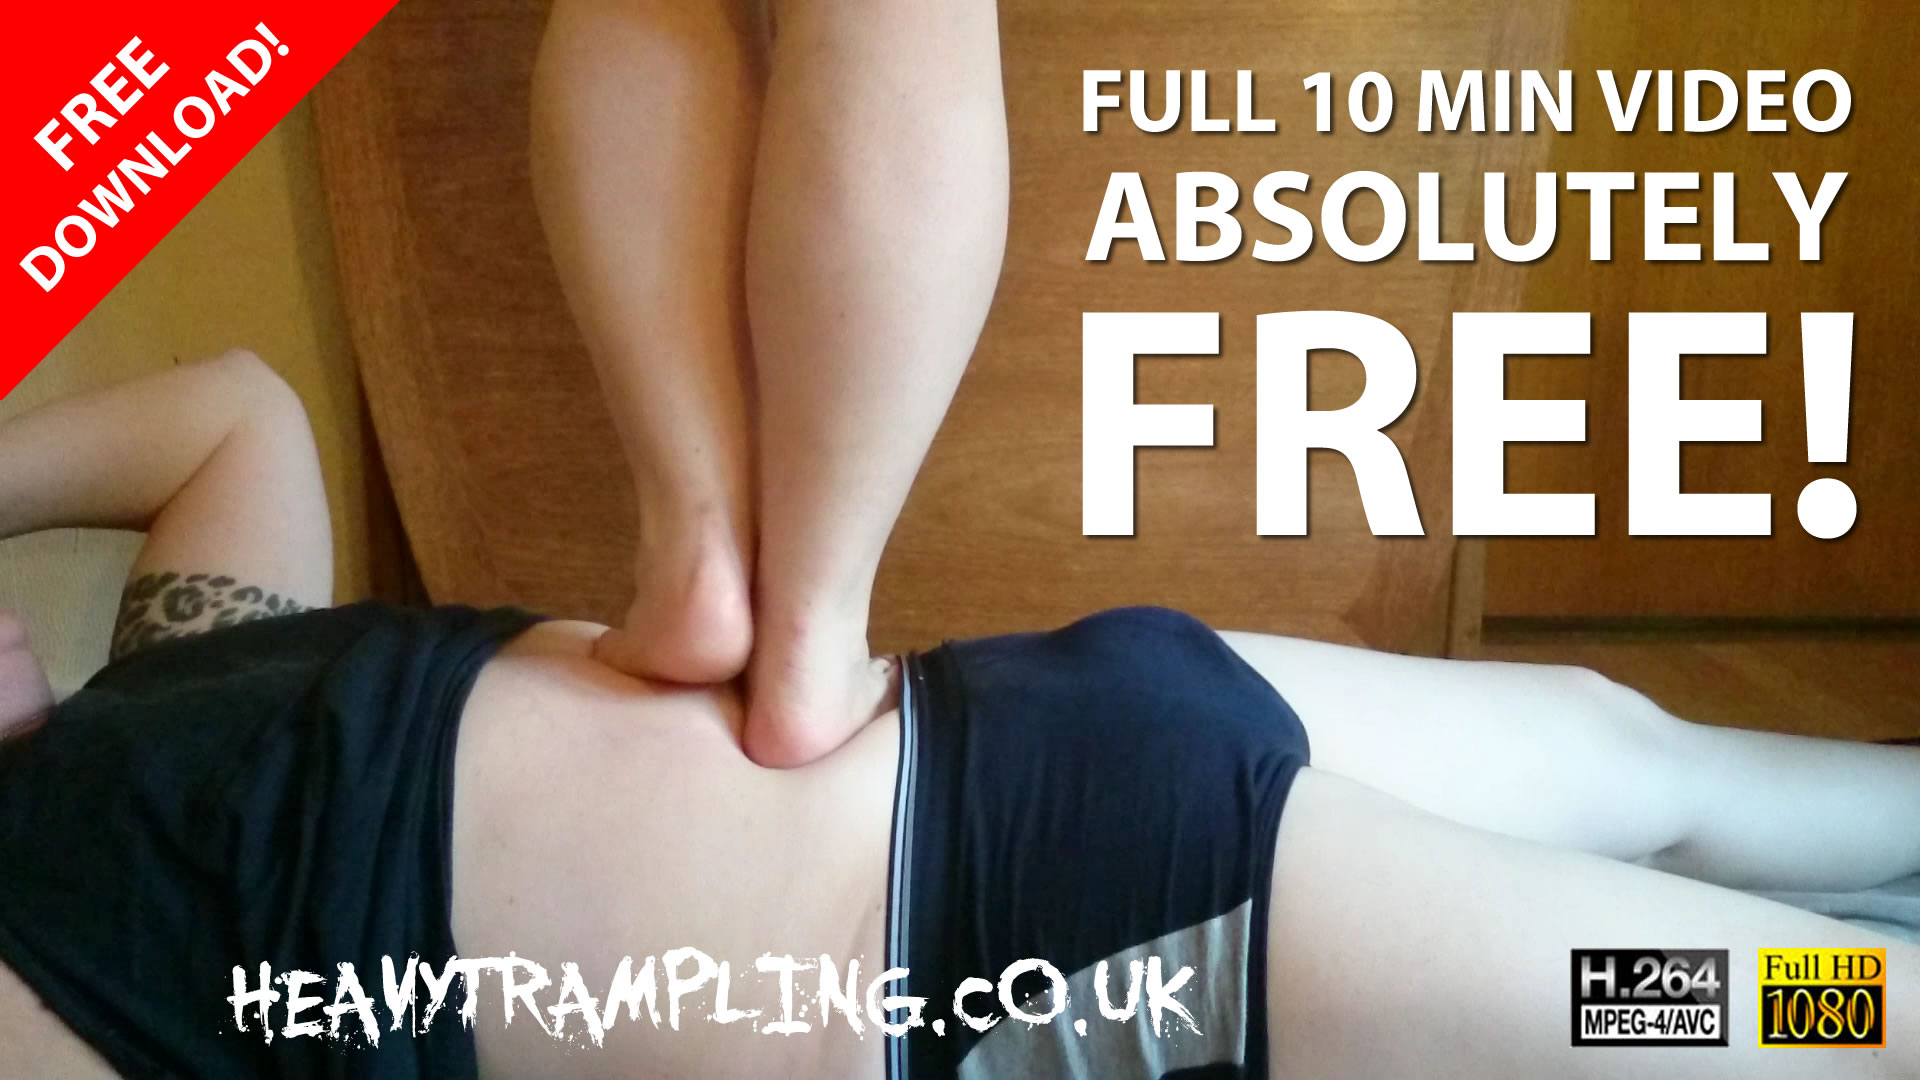 Trampling: 10 Minute Stomach Demolition FREE!